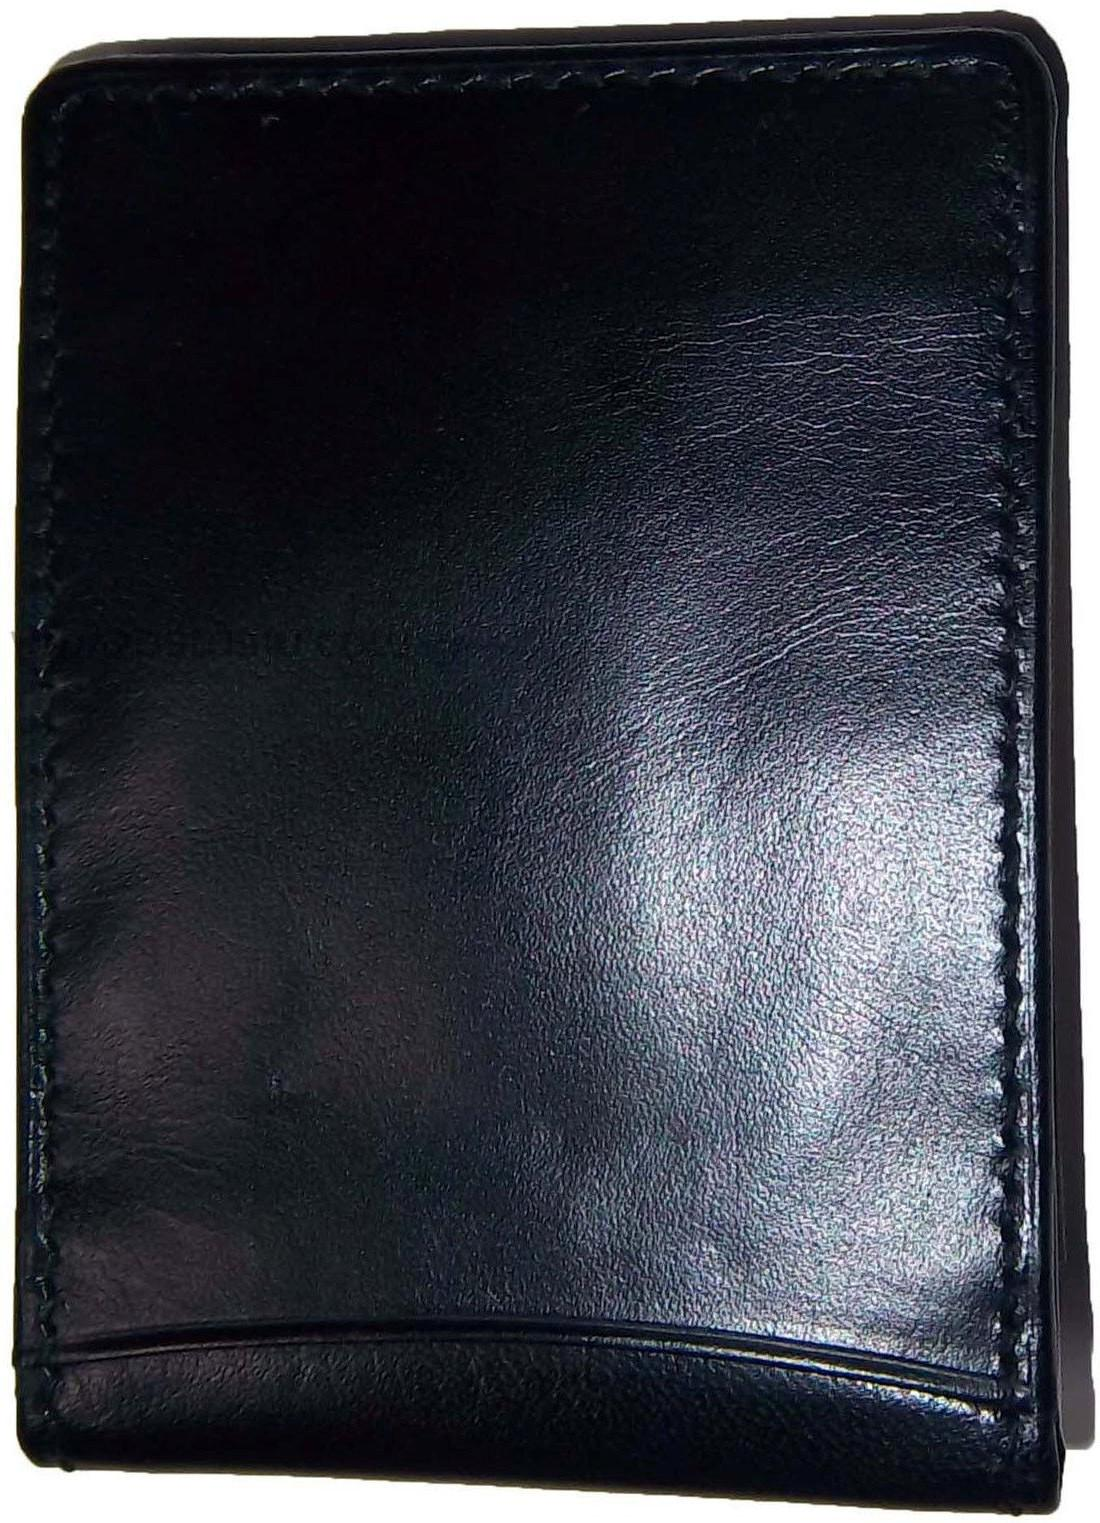 New Leather Money 3 holder silver metal clip